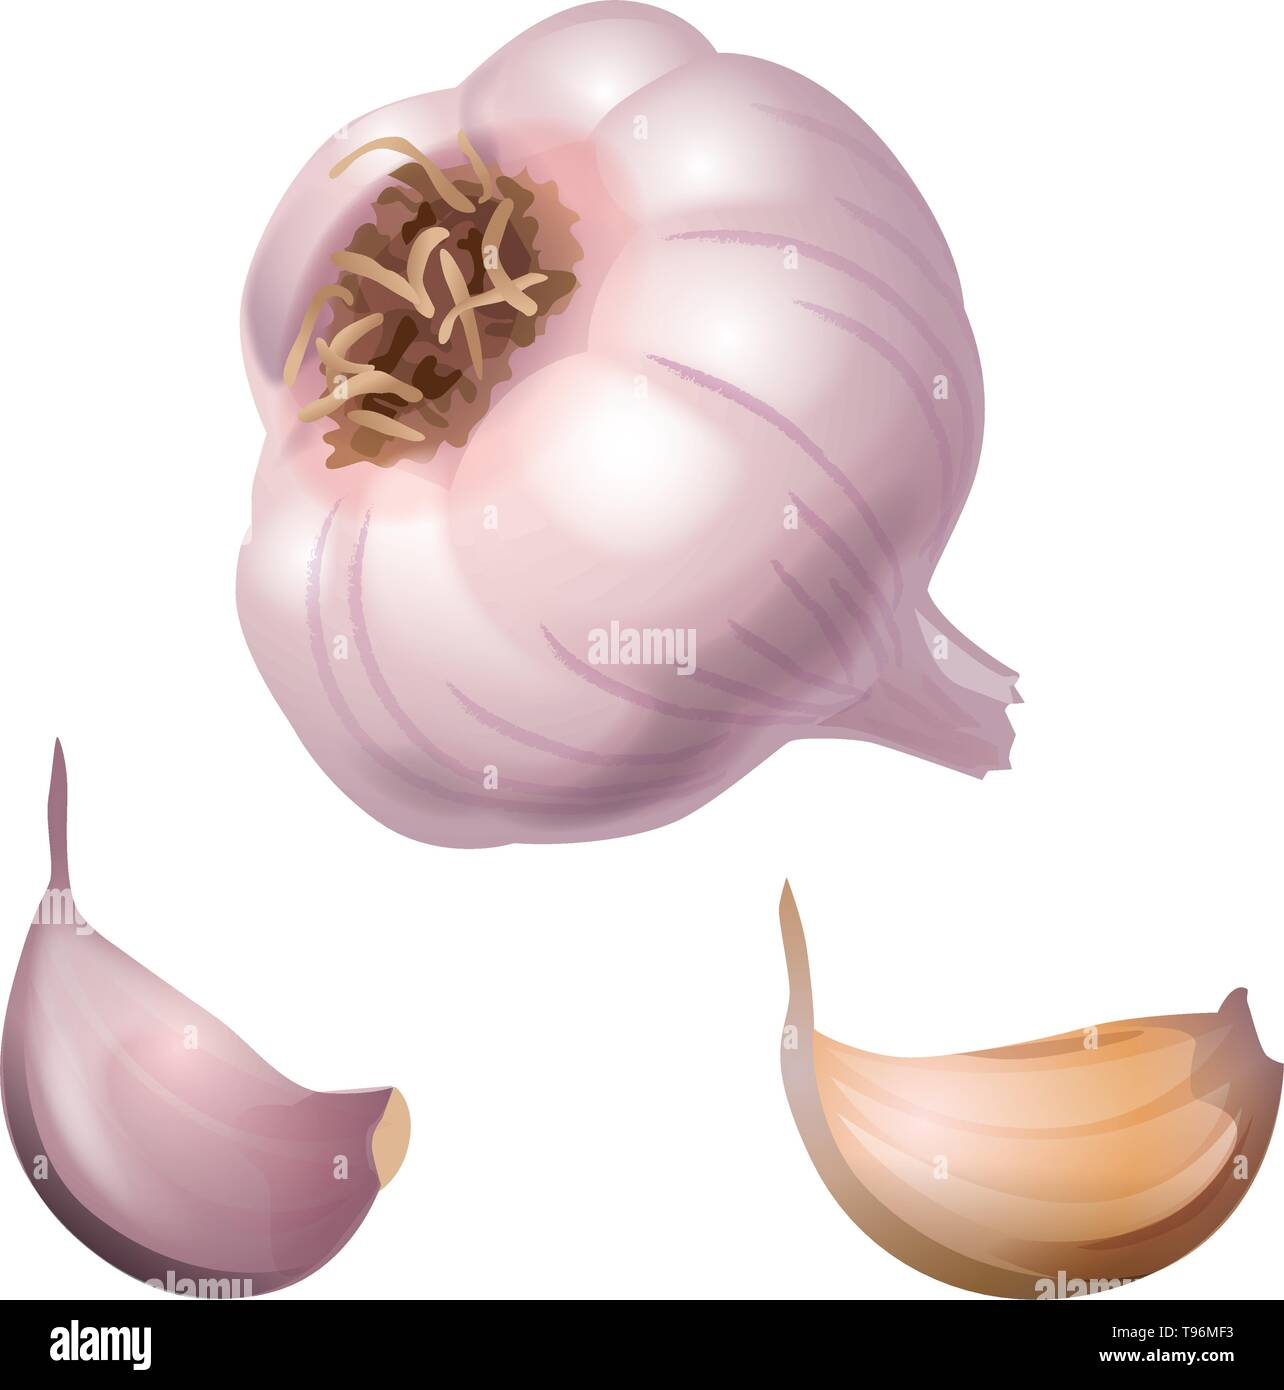 whole head of the garlic and two cloves of the garlic - Stock Vector